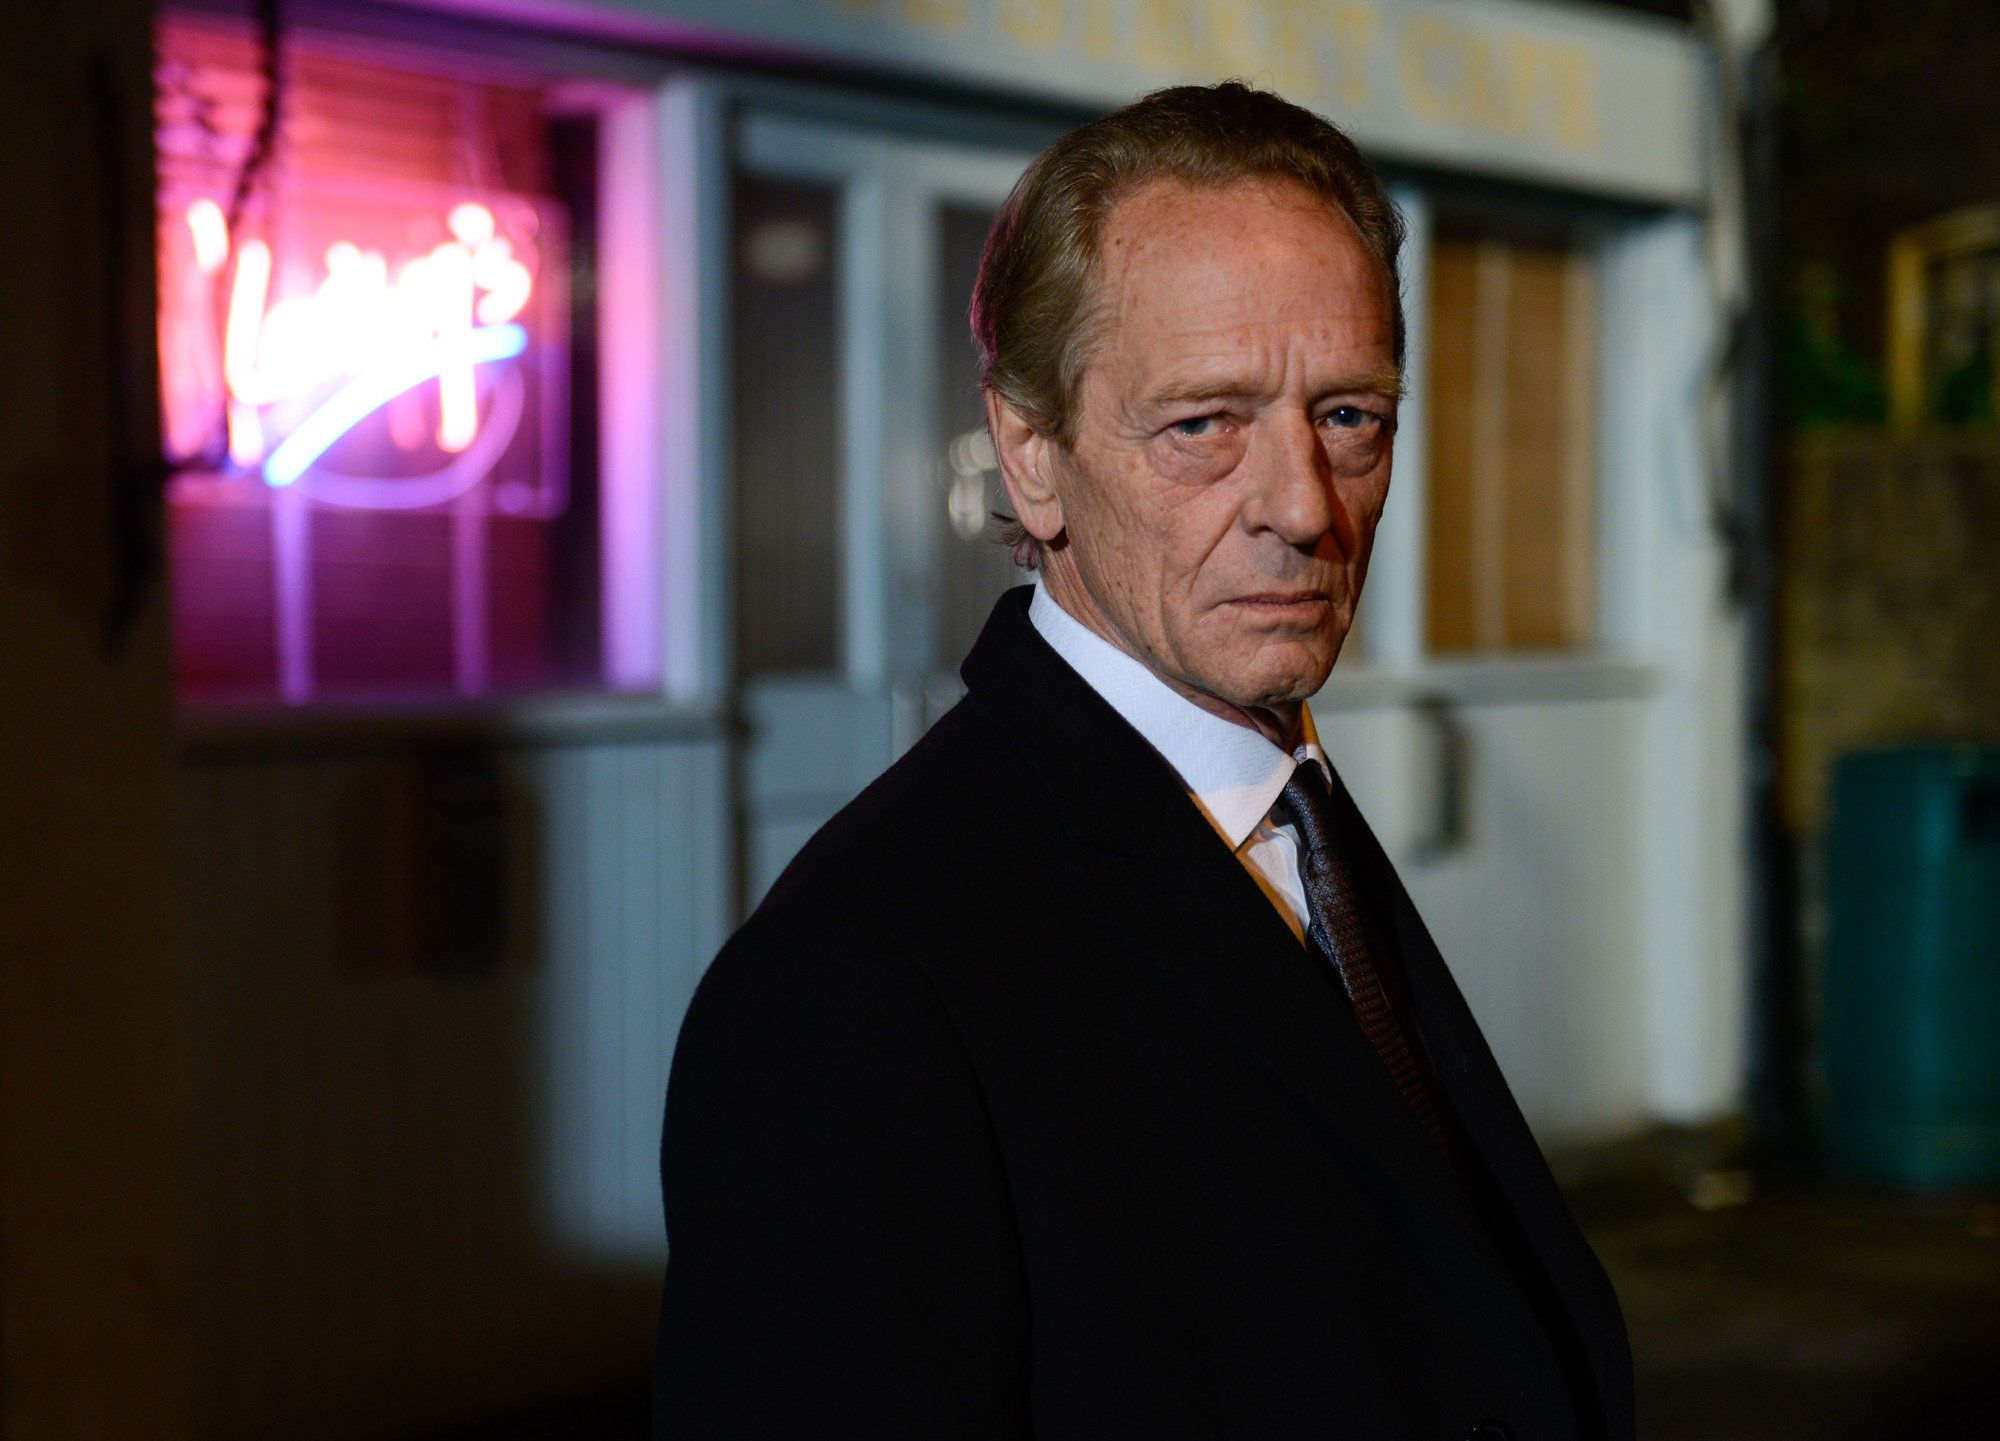 'EastEnders' Just Confirmed A Massive Fan Theory As James Willmott-Brown